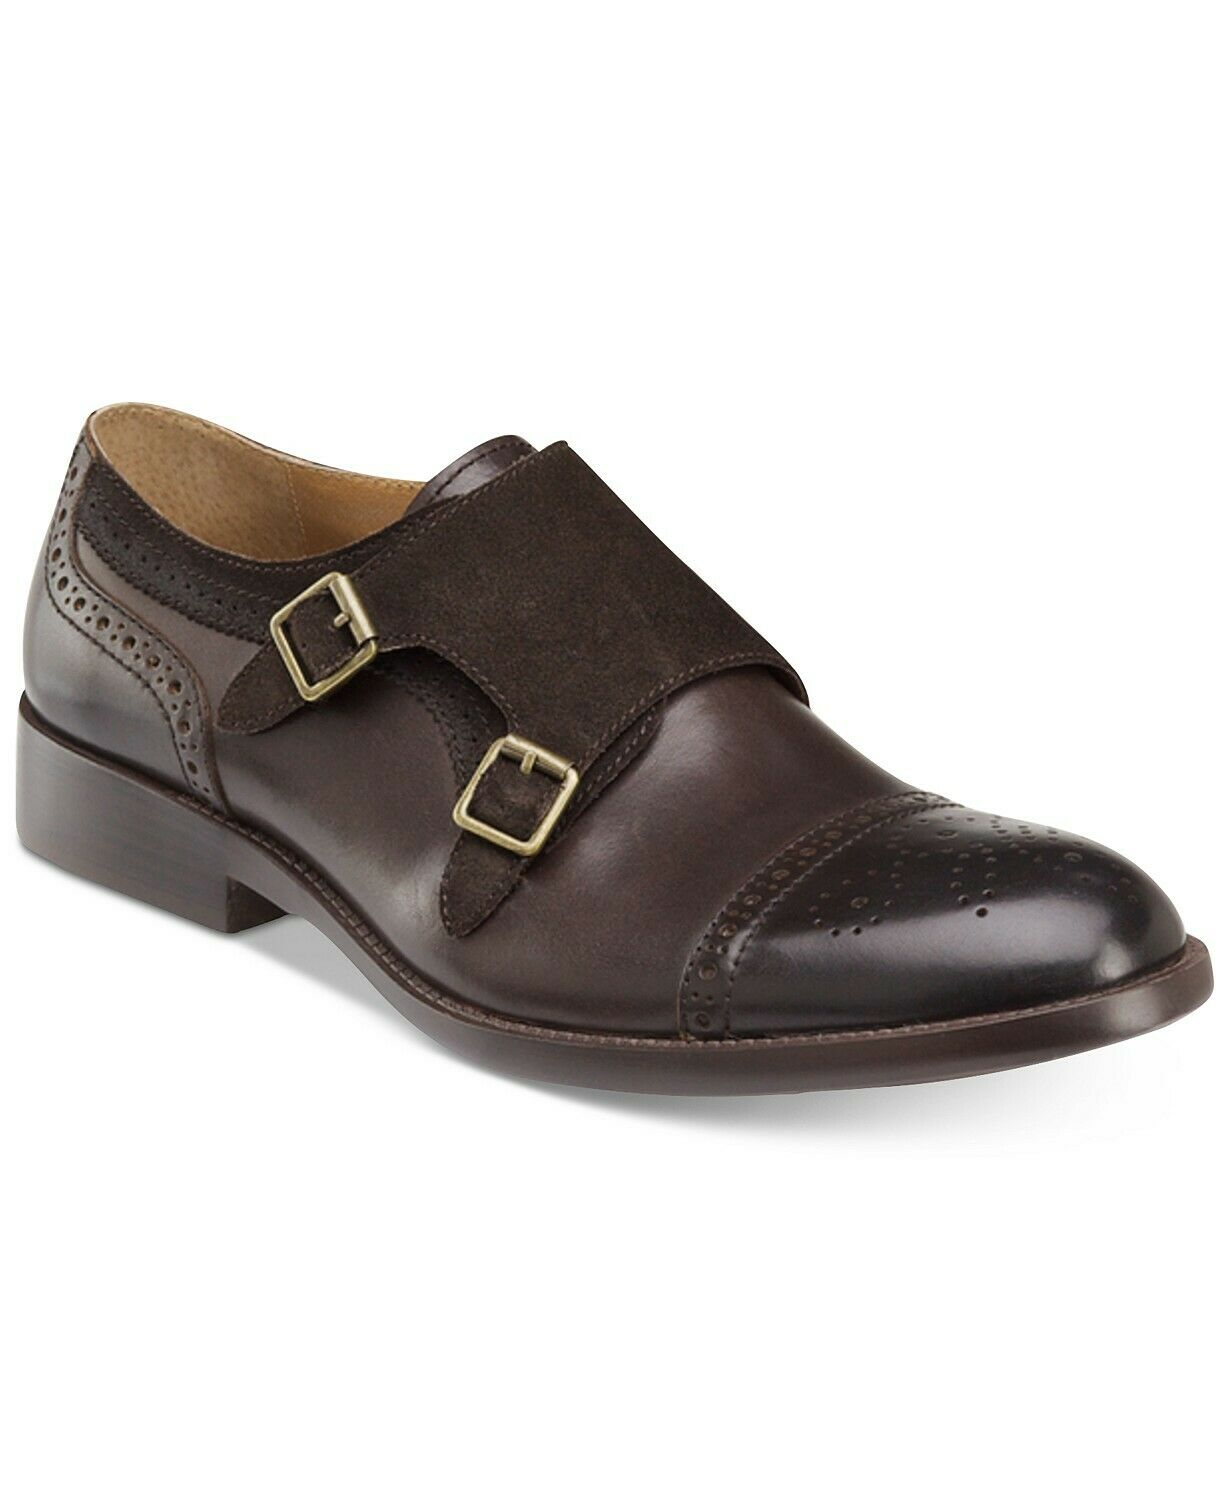 Johnston Murphy para hombre Fletcher Doble & Monk Strap Slip-On Mocasines M